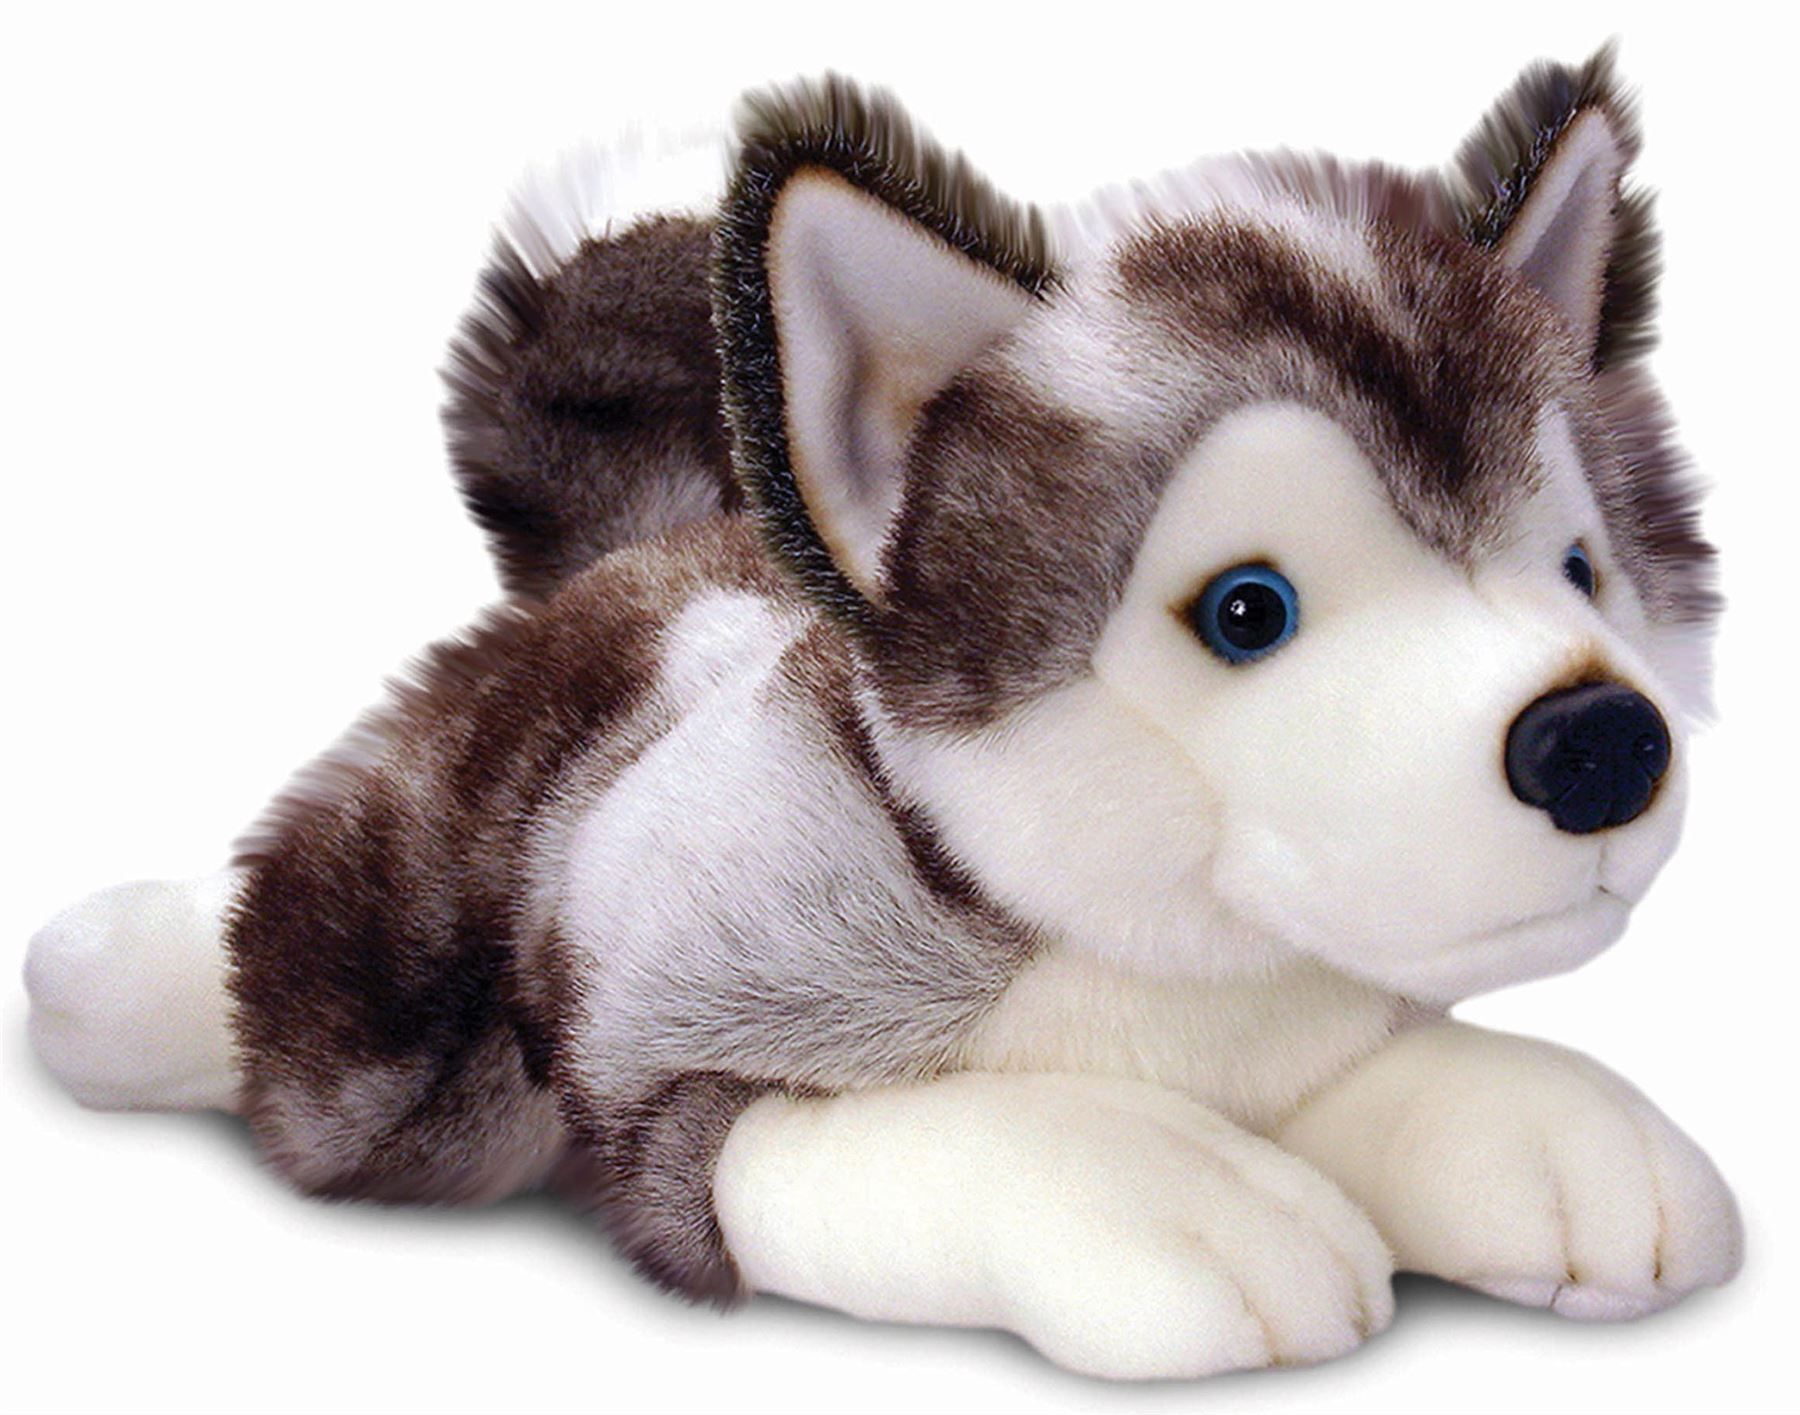 Best Dog Interactive Toy For Kids